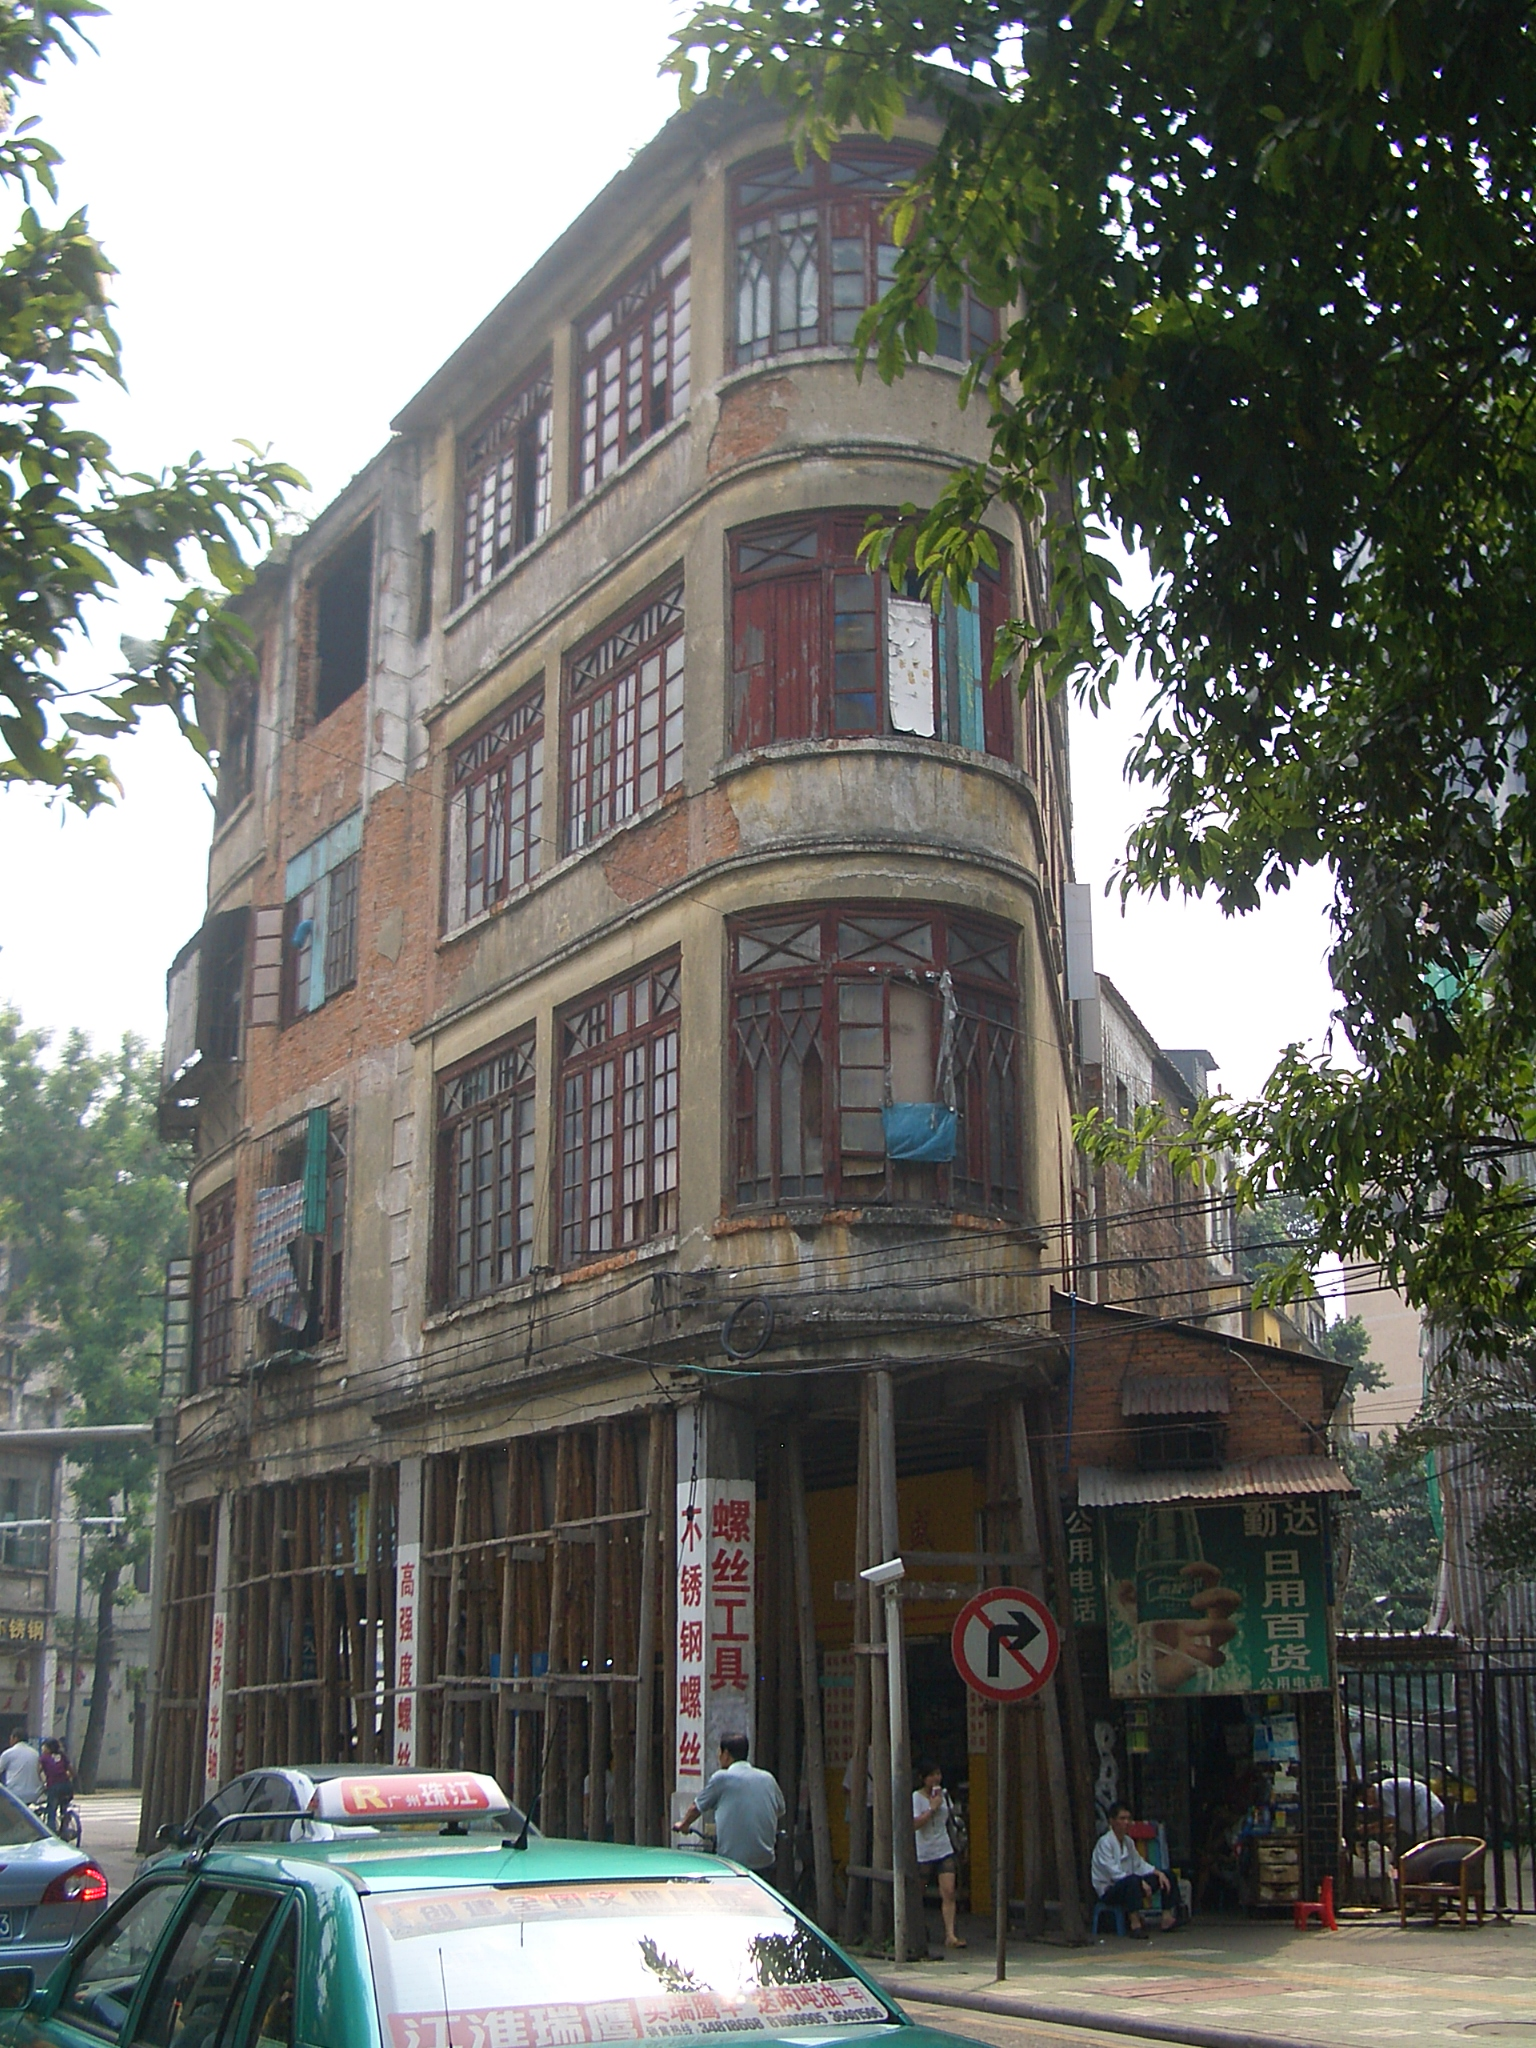 Description guangzhou old building 0537